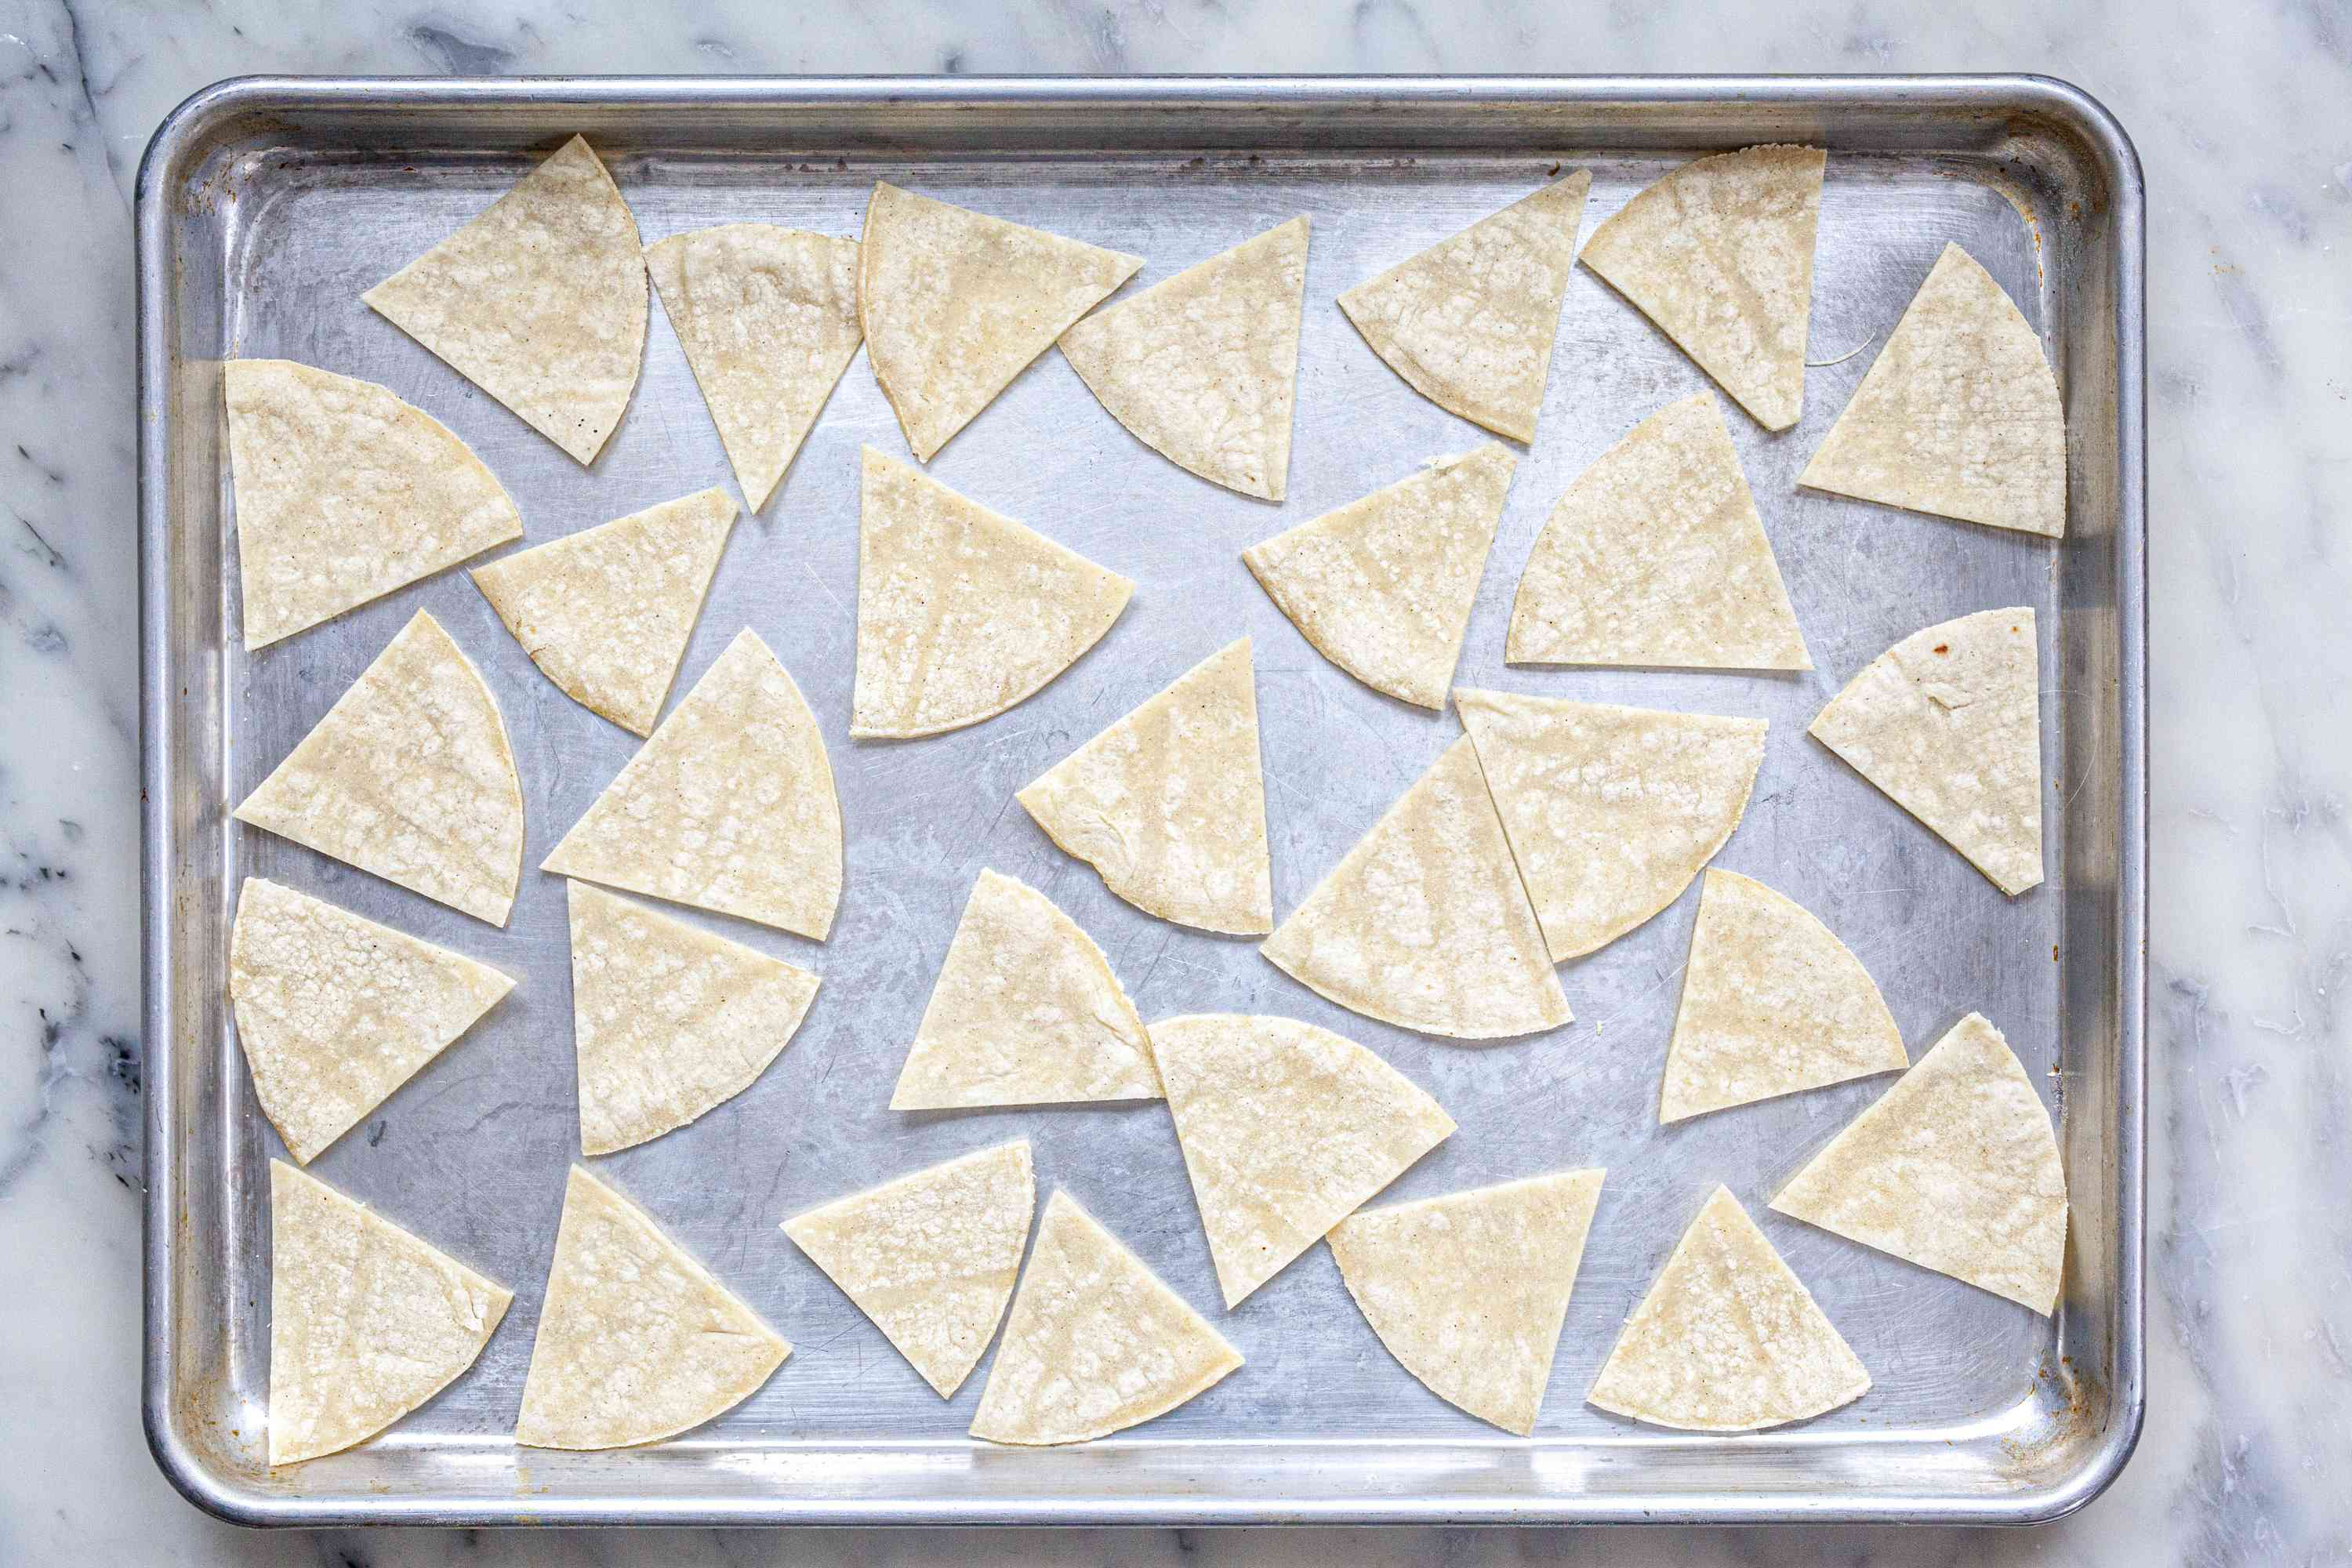 Tortilla wedges on a sheet pan to show how to make tortilla chips.